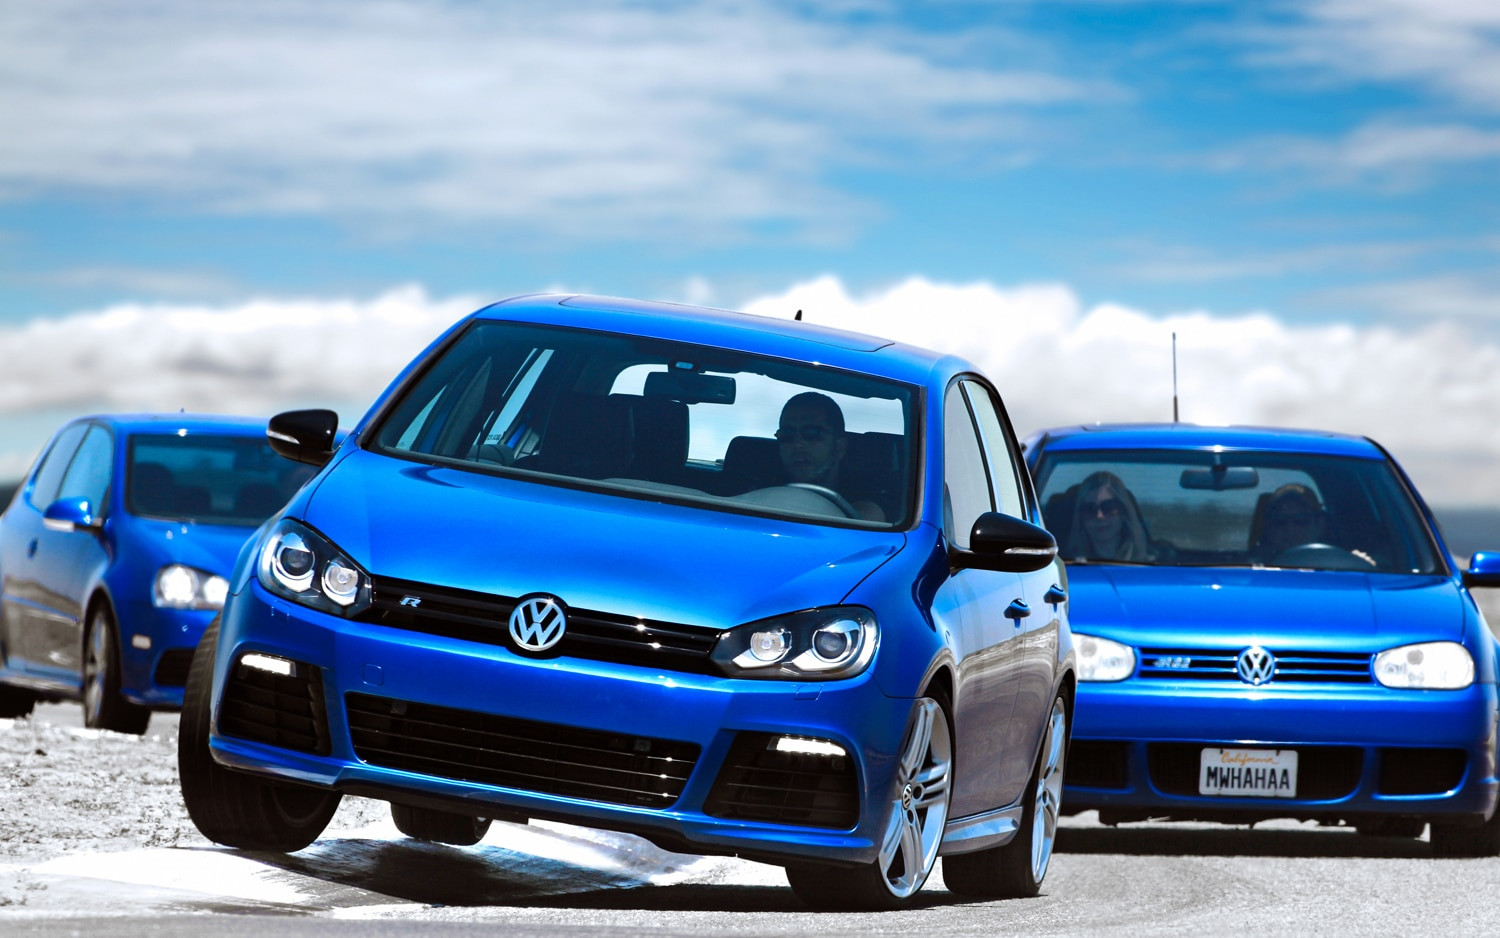 2004 and 2008 Volkswagen R32 and 2013 Volkswagen Golf-R - Automobile Magazine